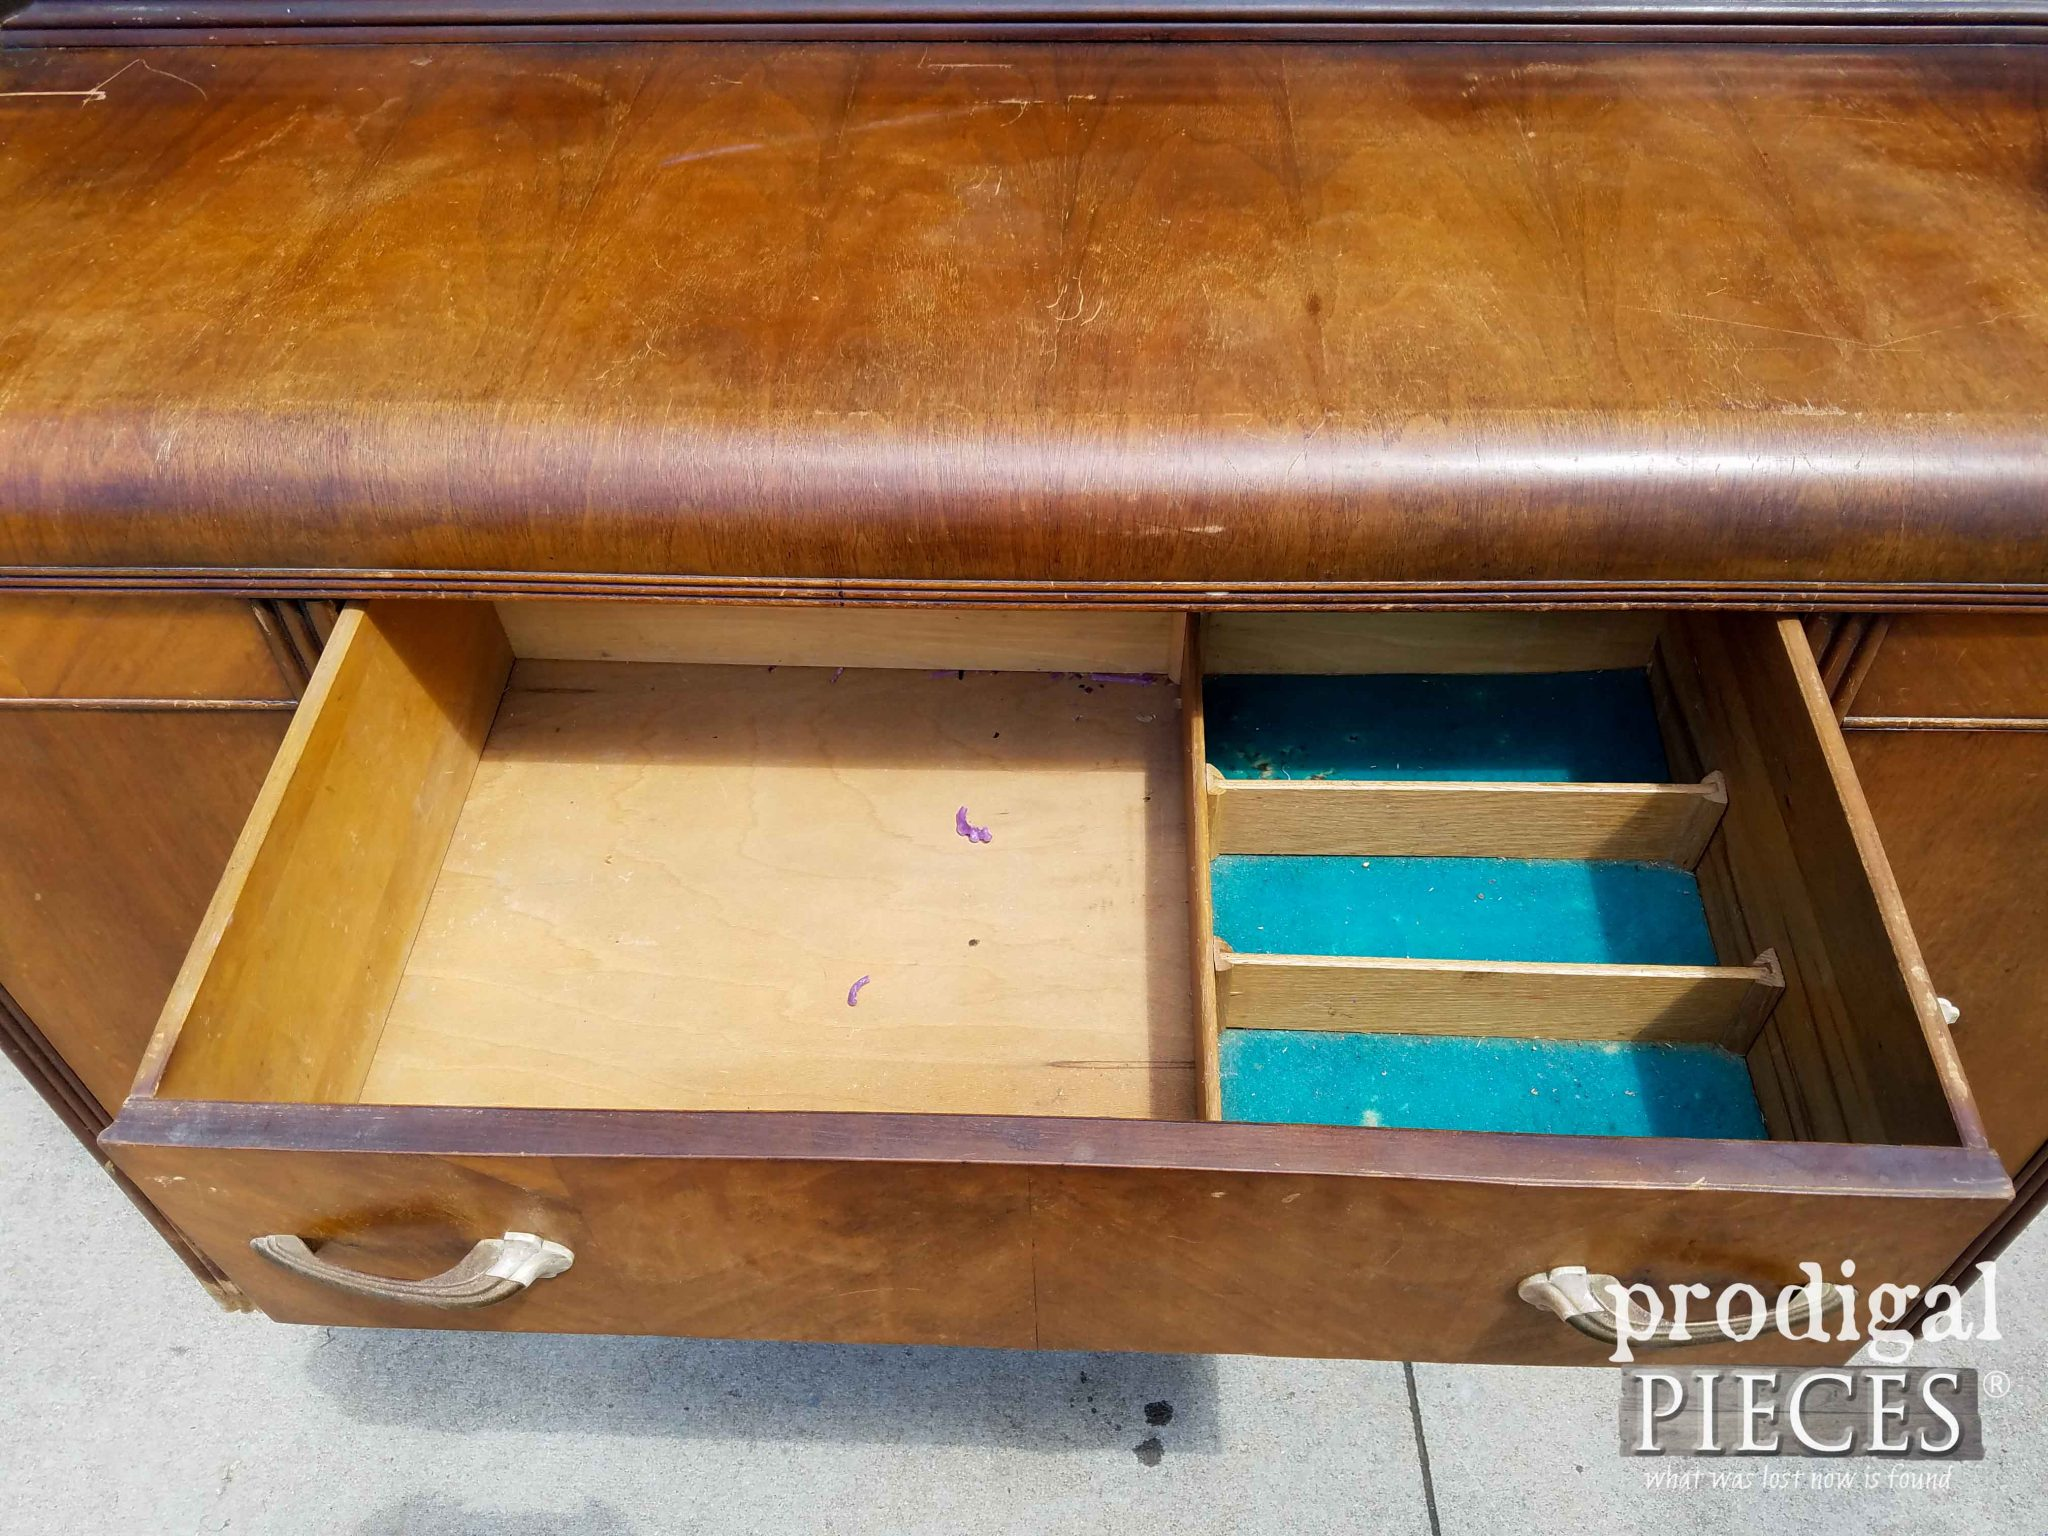 Inside Top Drawer of Waterfall Buffet | prodigalpieces.com